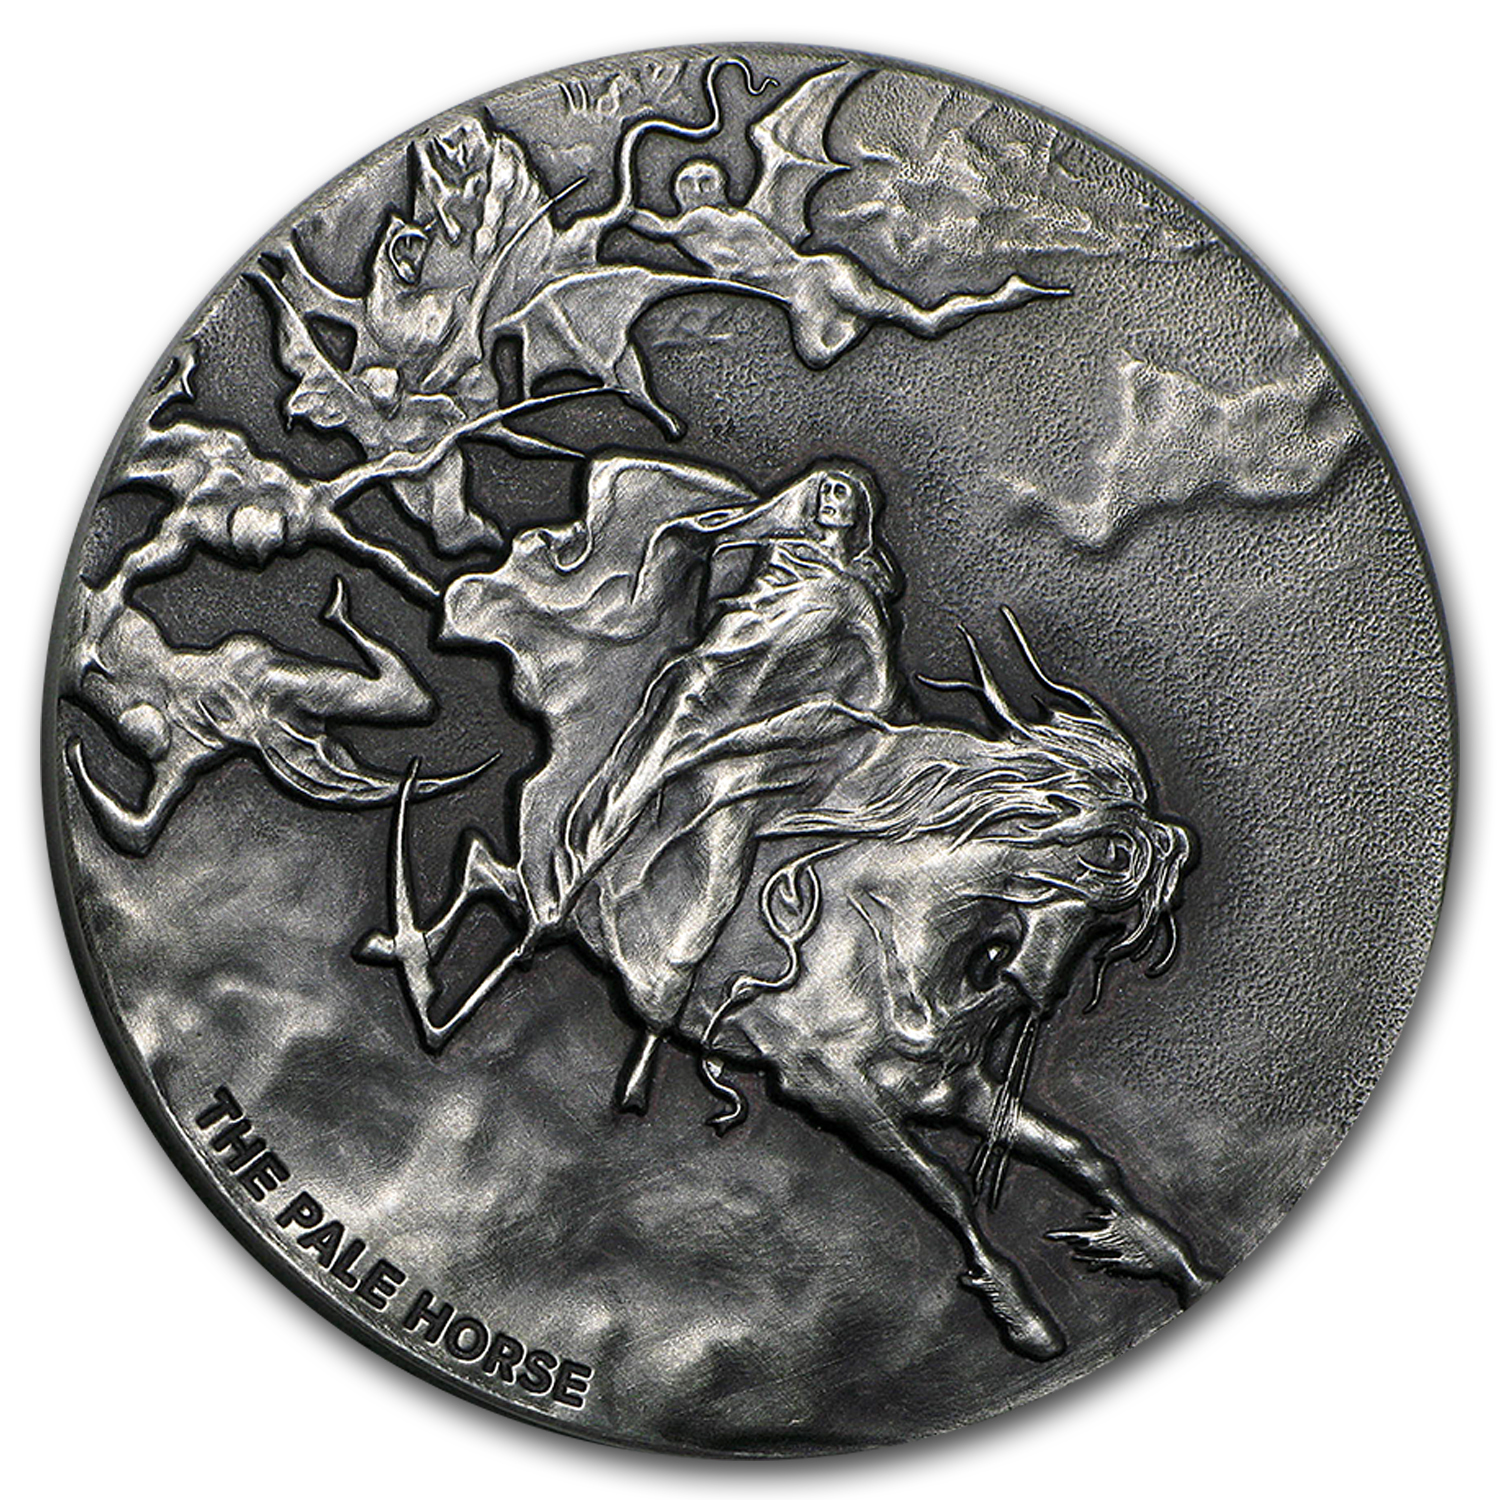 2 oz Silver Coin - Biblical Series (Pale Horse)